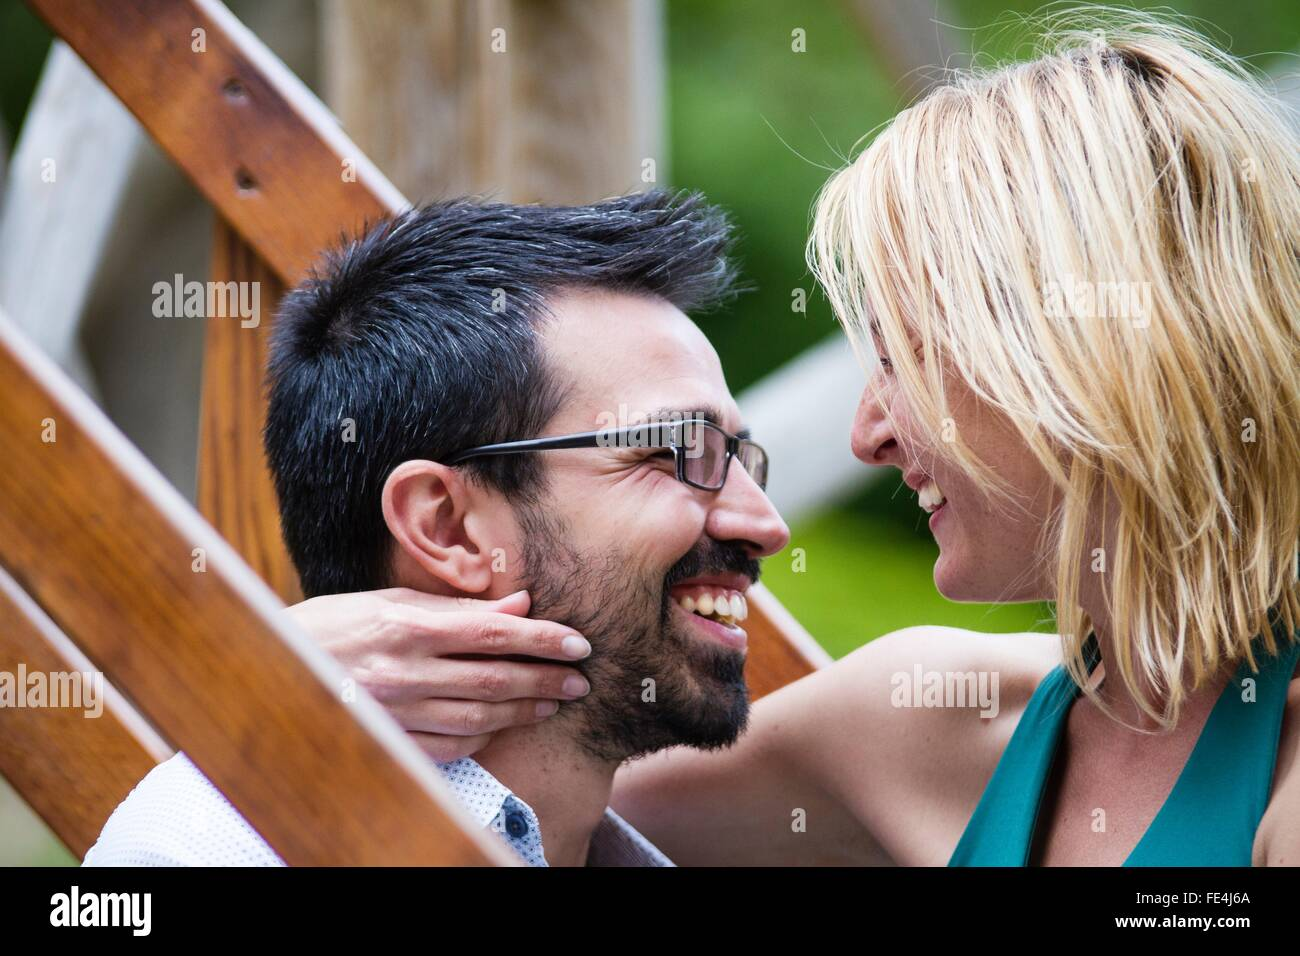 Close-Up Of A Couple Romancing - Stock Image